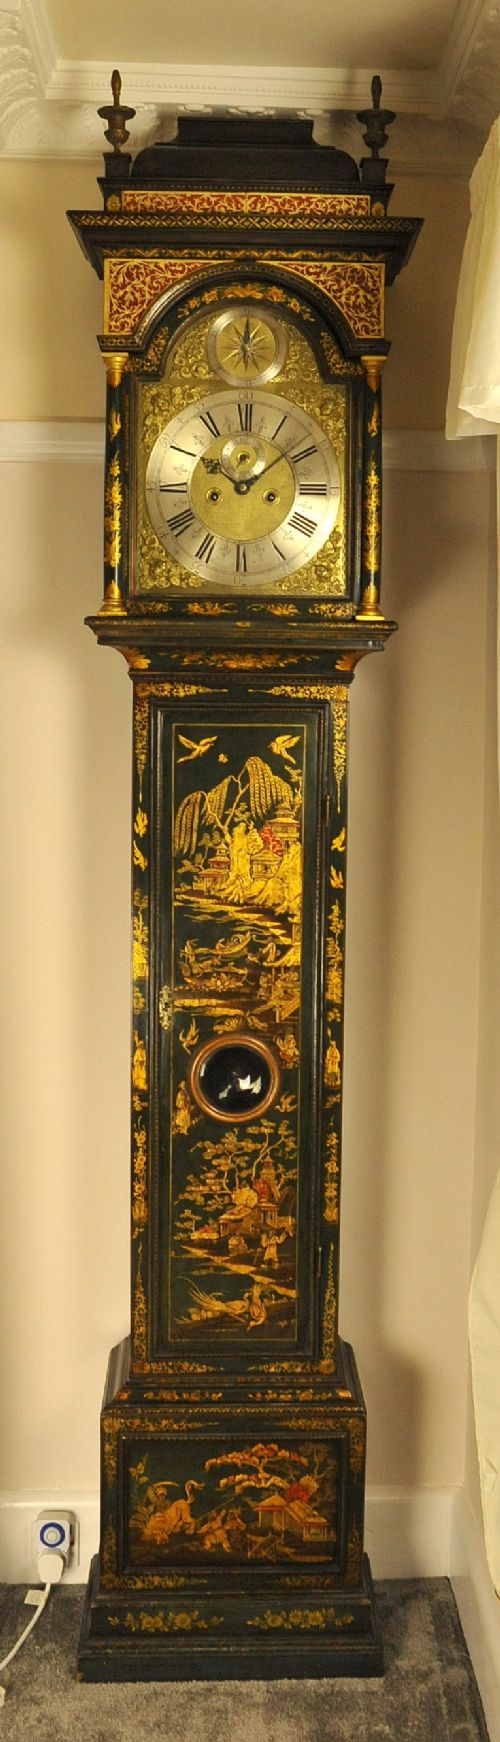 windmills green lacquer chinoiserie longcase grandfather clock